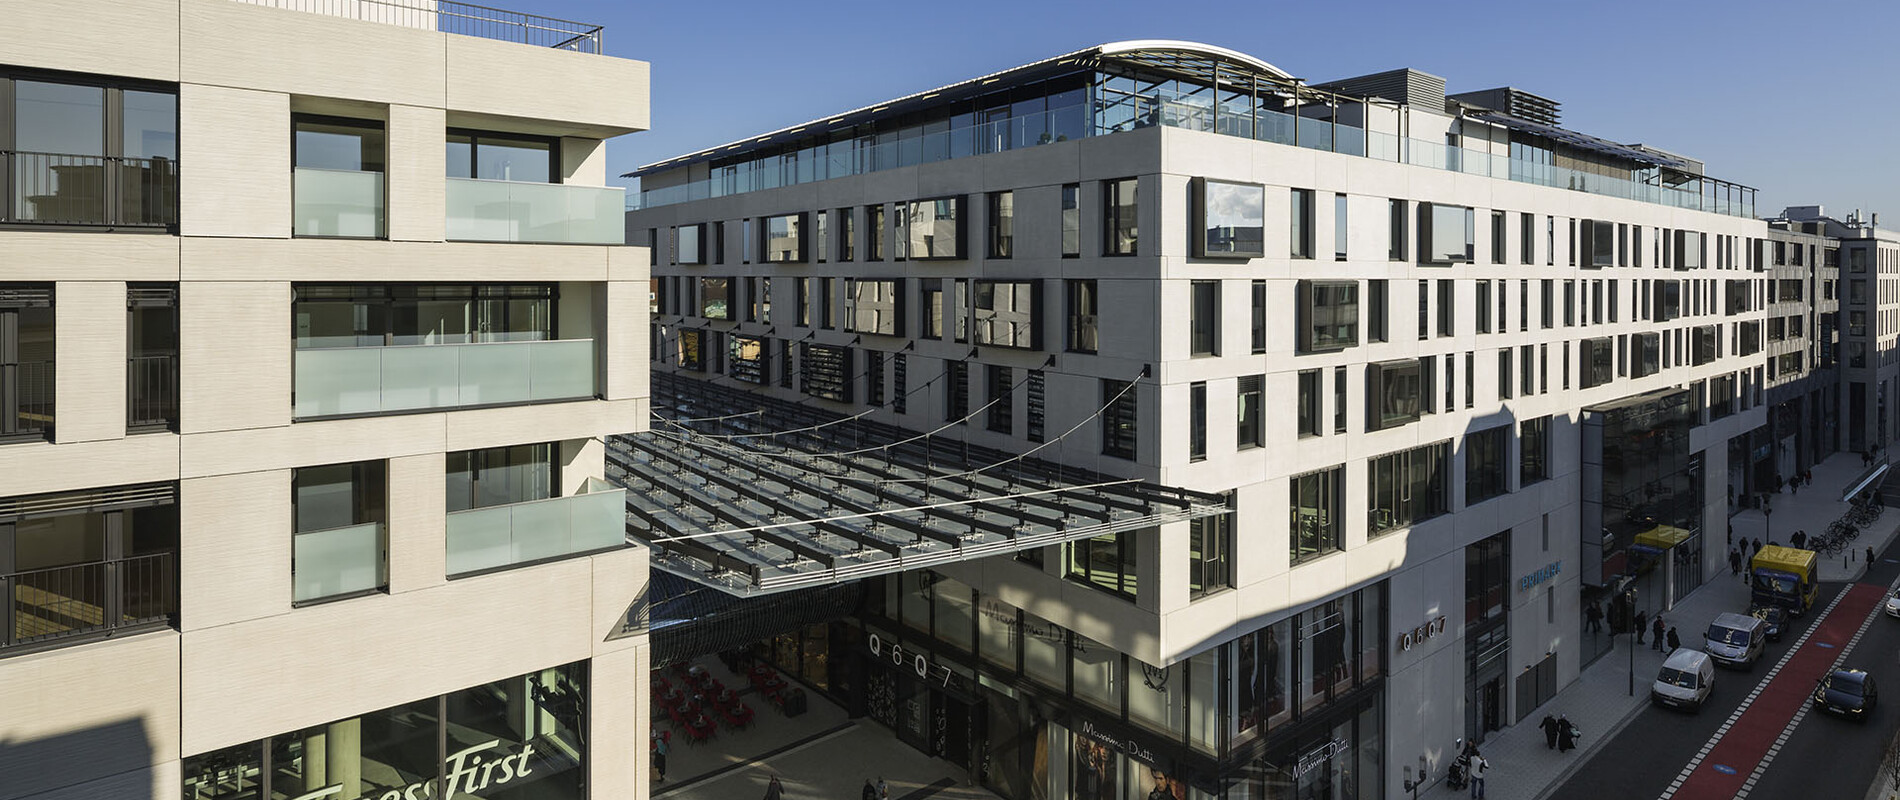 new construction - mixed used quarter - shopping gallery - restaurants - apartments - hotel - wellness and health facilities - offices - underground parking - Q6Q7 Mannheim - Q6Q7 - area overview - entrance area - birds eye perspective